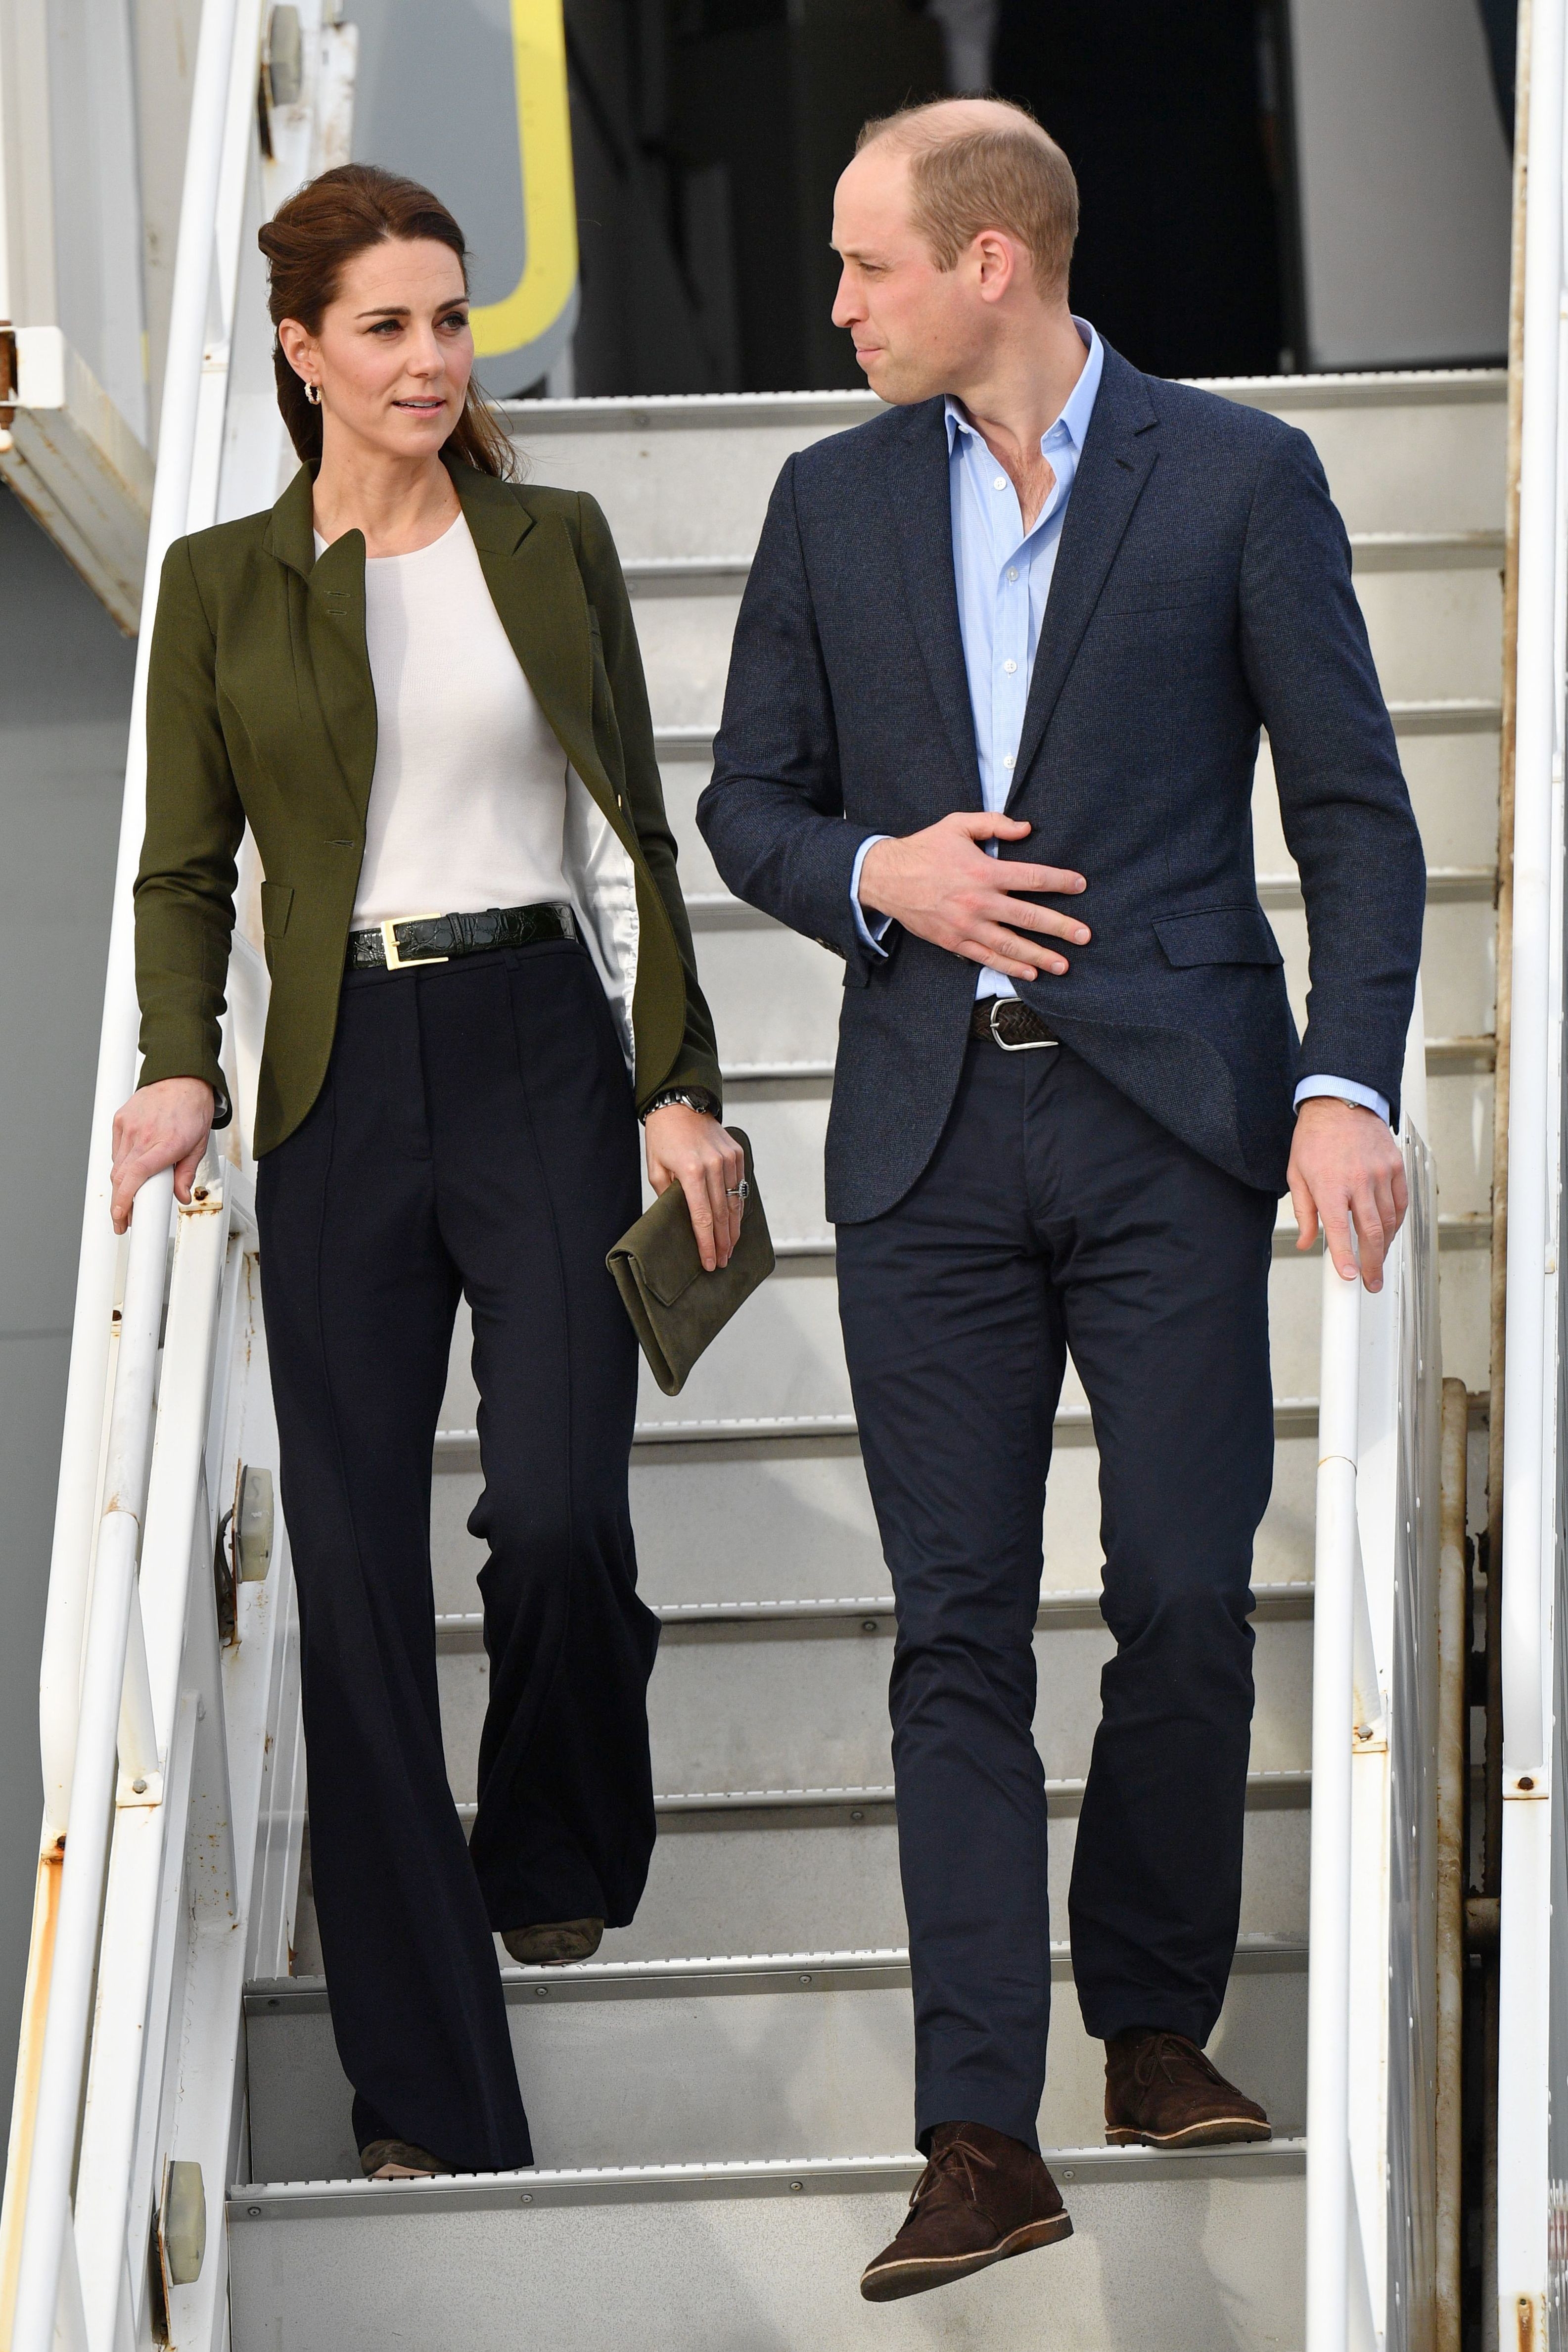 Duchess Kate and Prince William arrive at RAF Akrotiri  to visit military personnel in Cyprus on Dec. 5, 2018.